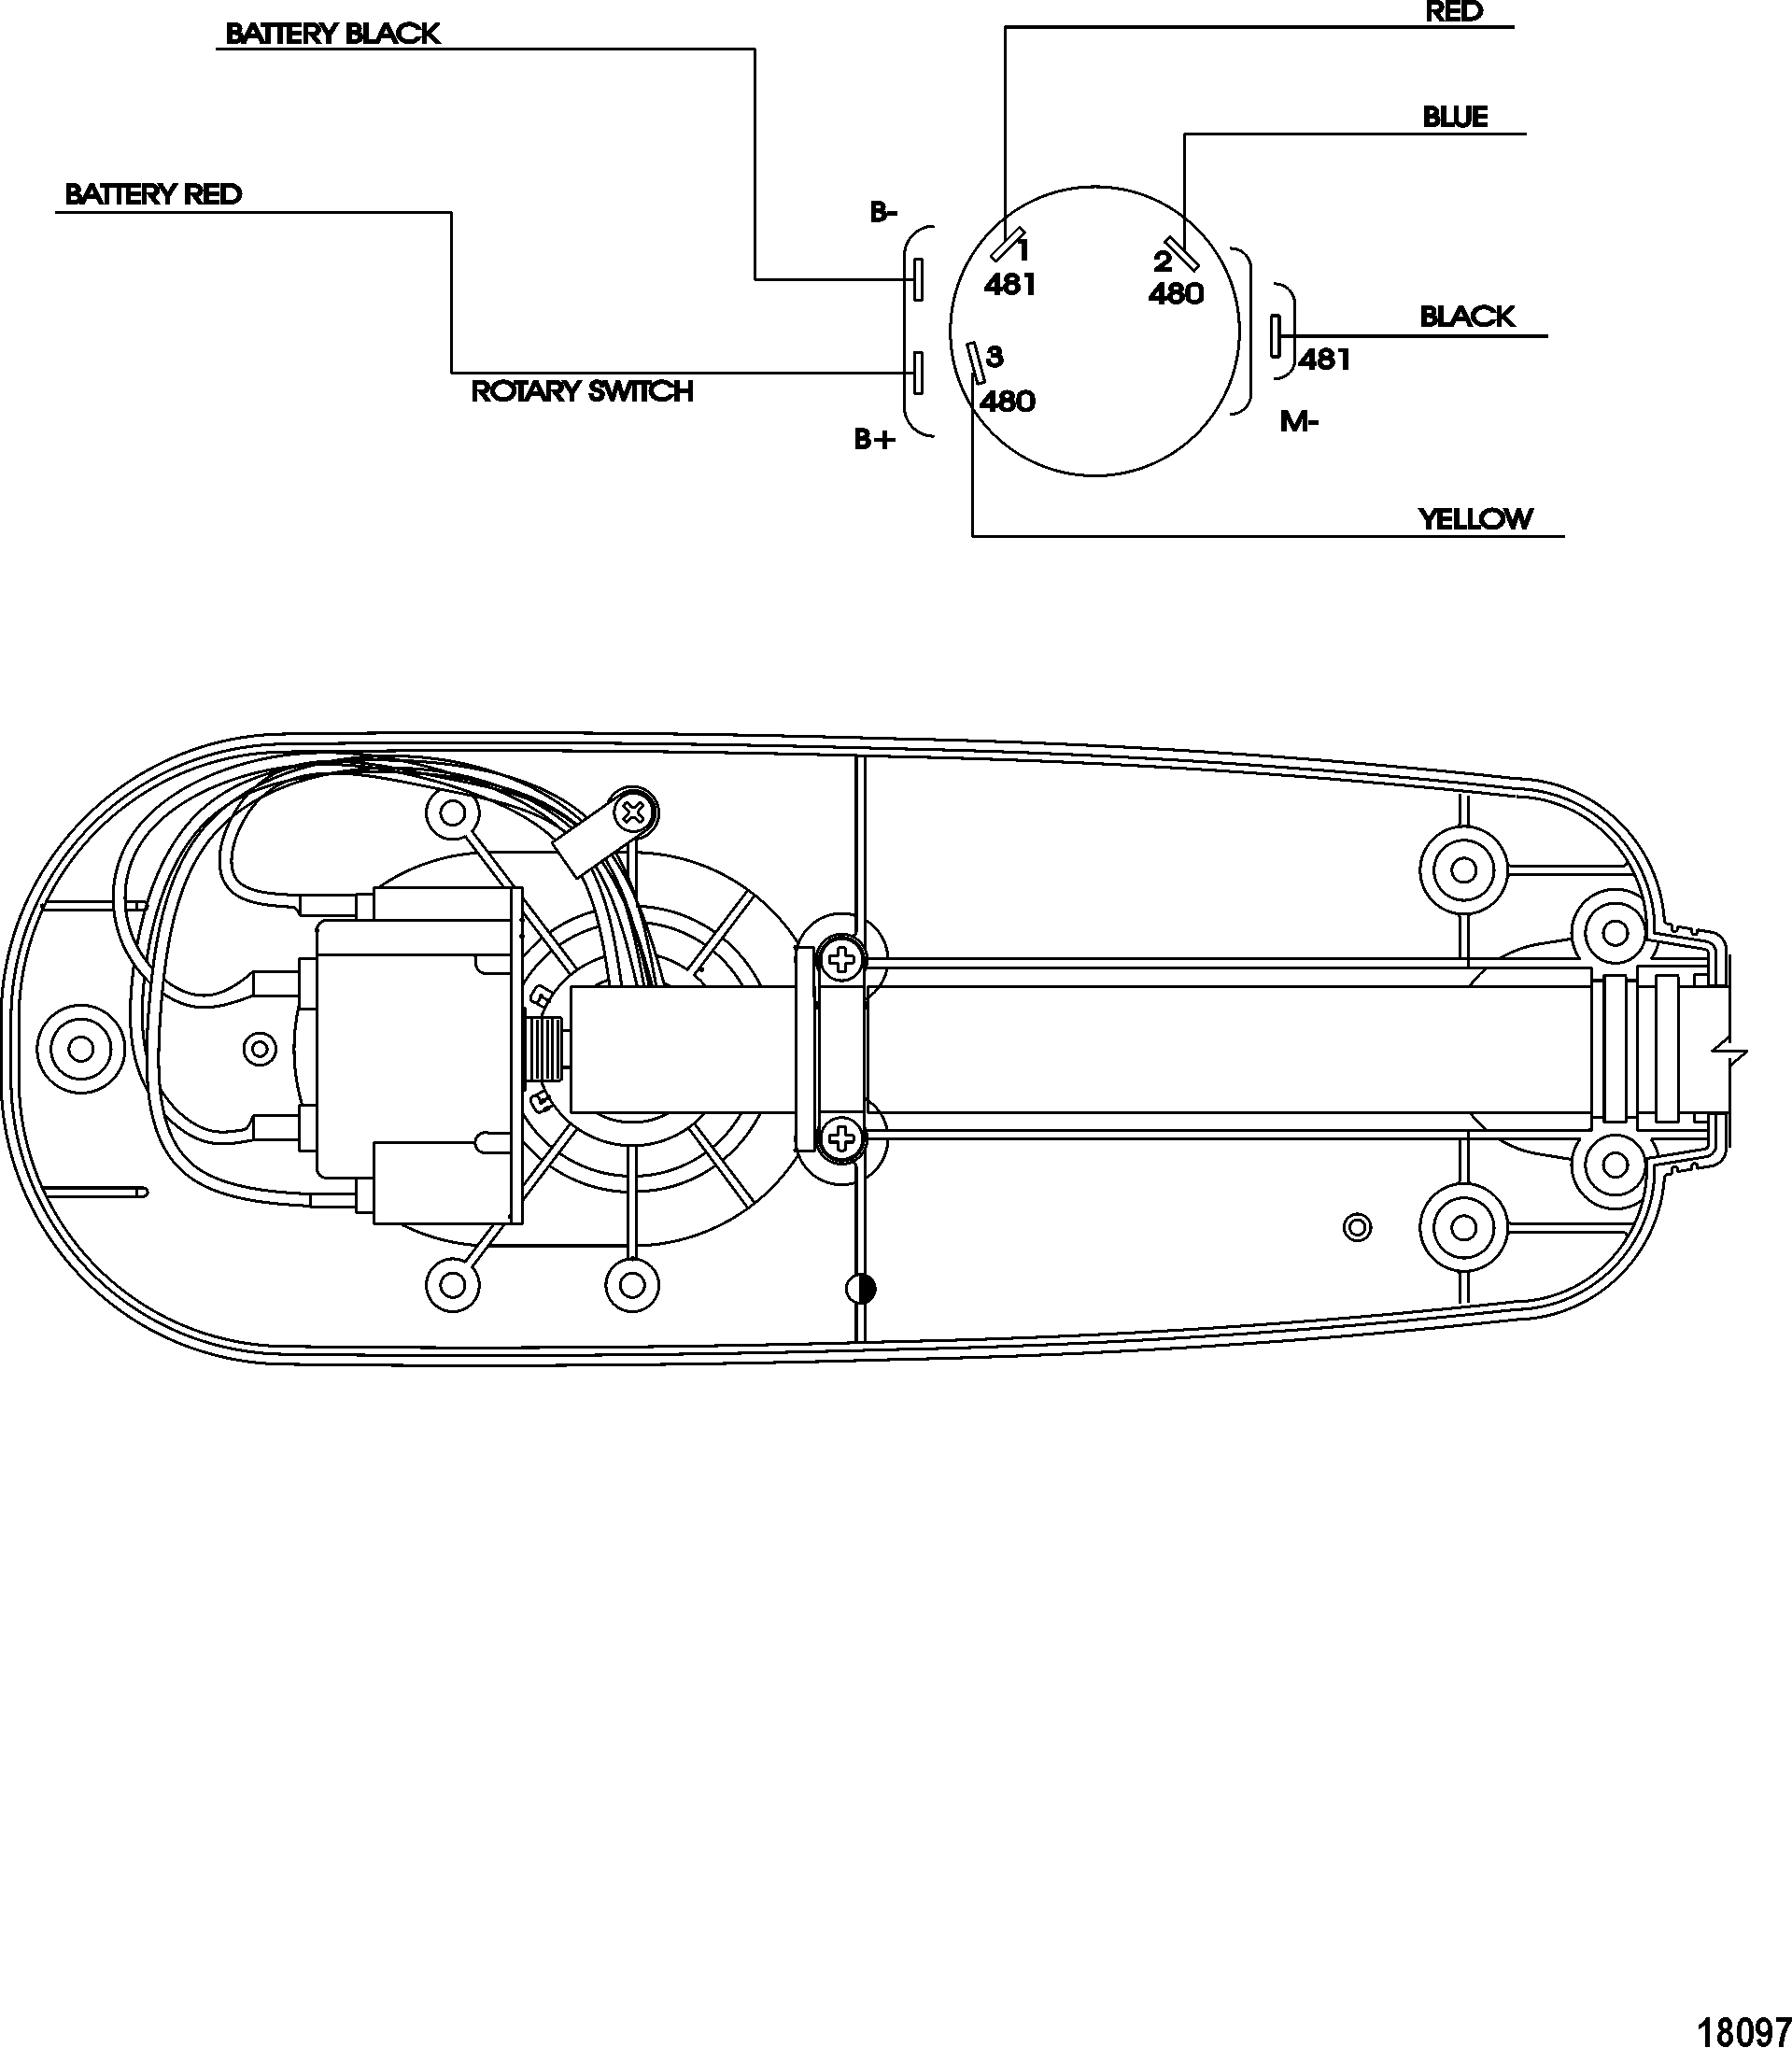 Motorguide Gwb67v Wiring Diagram Page 4 And Evinrude Trolling Motor Thruster Series 9b017600 Omc Schematic Wireless